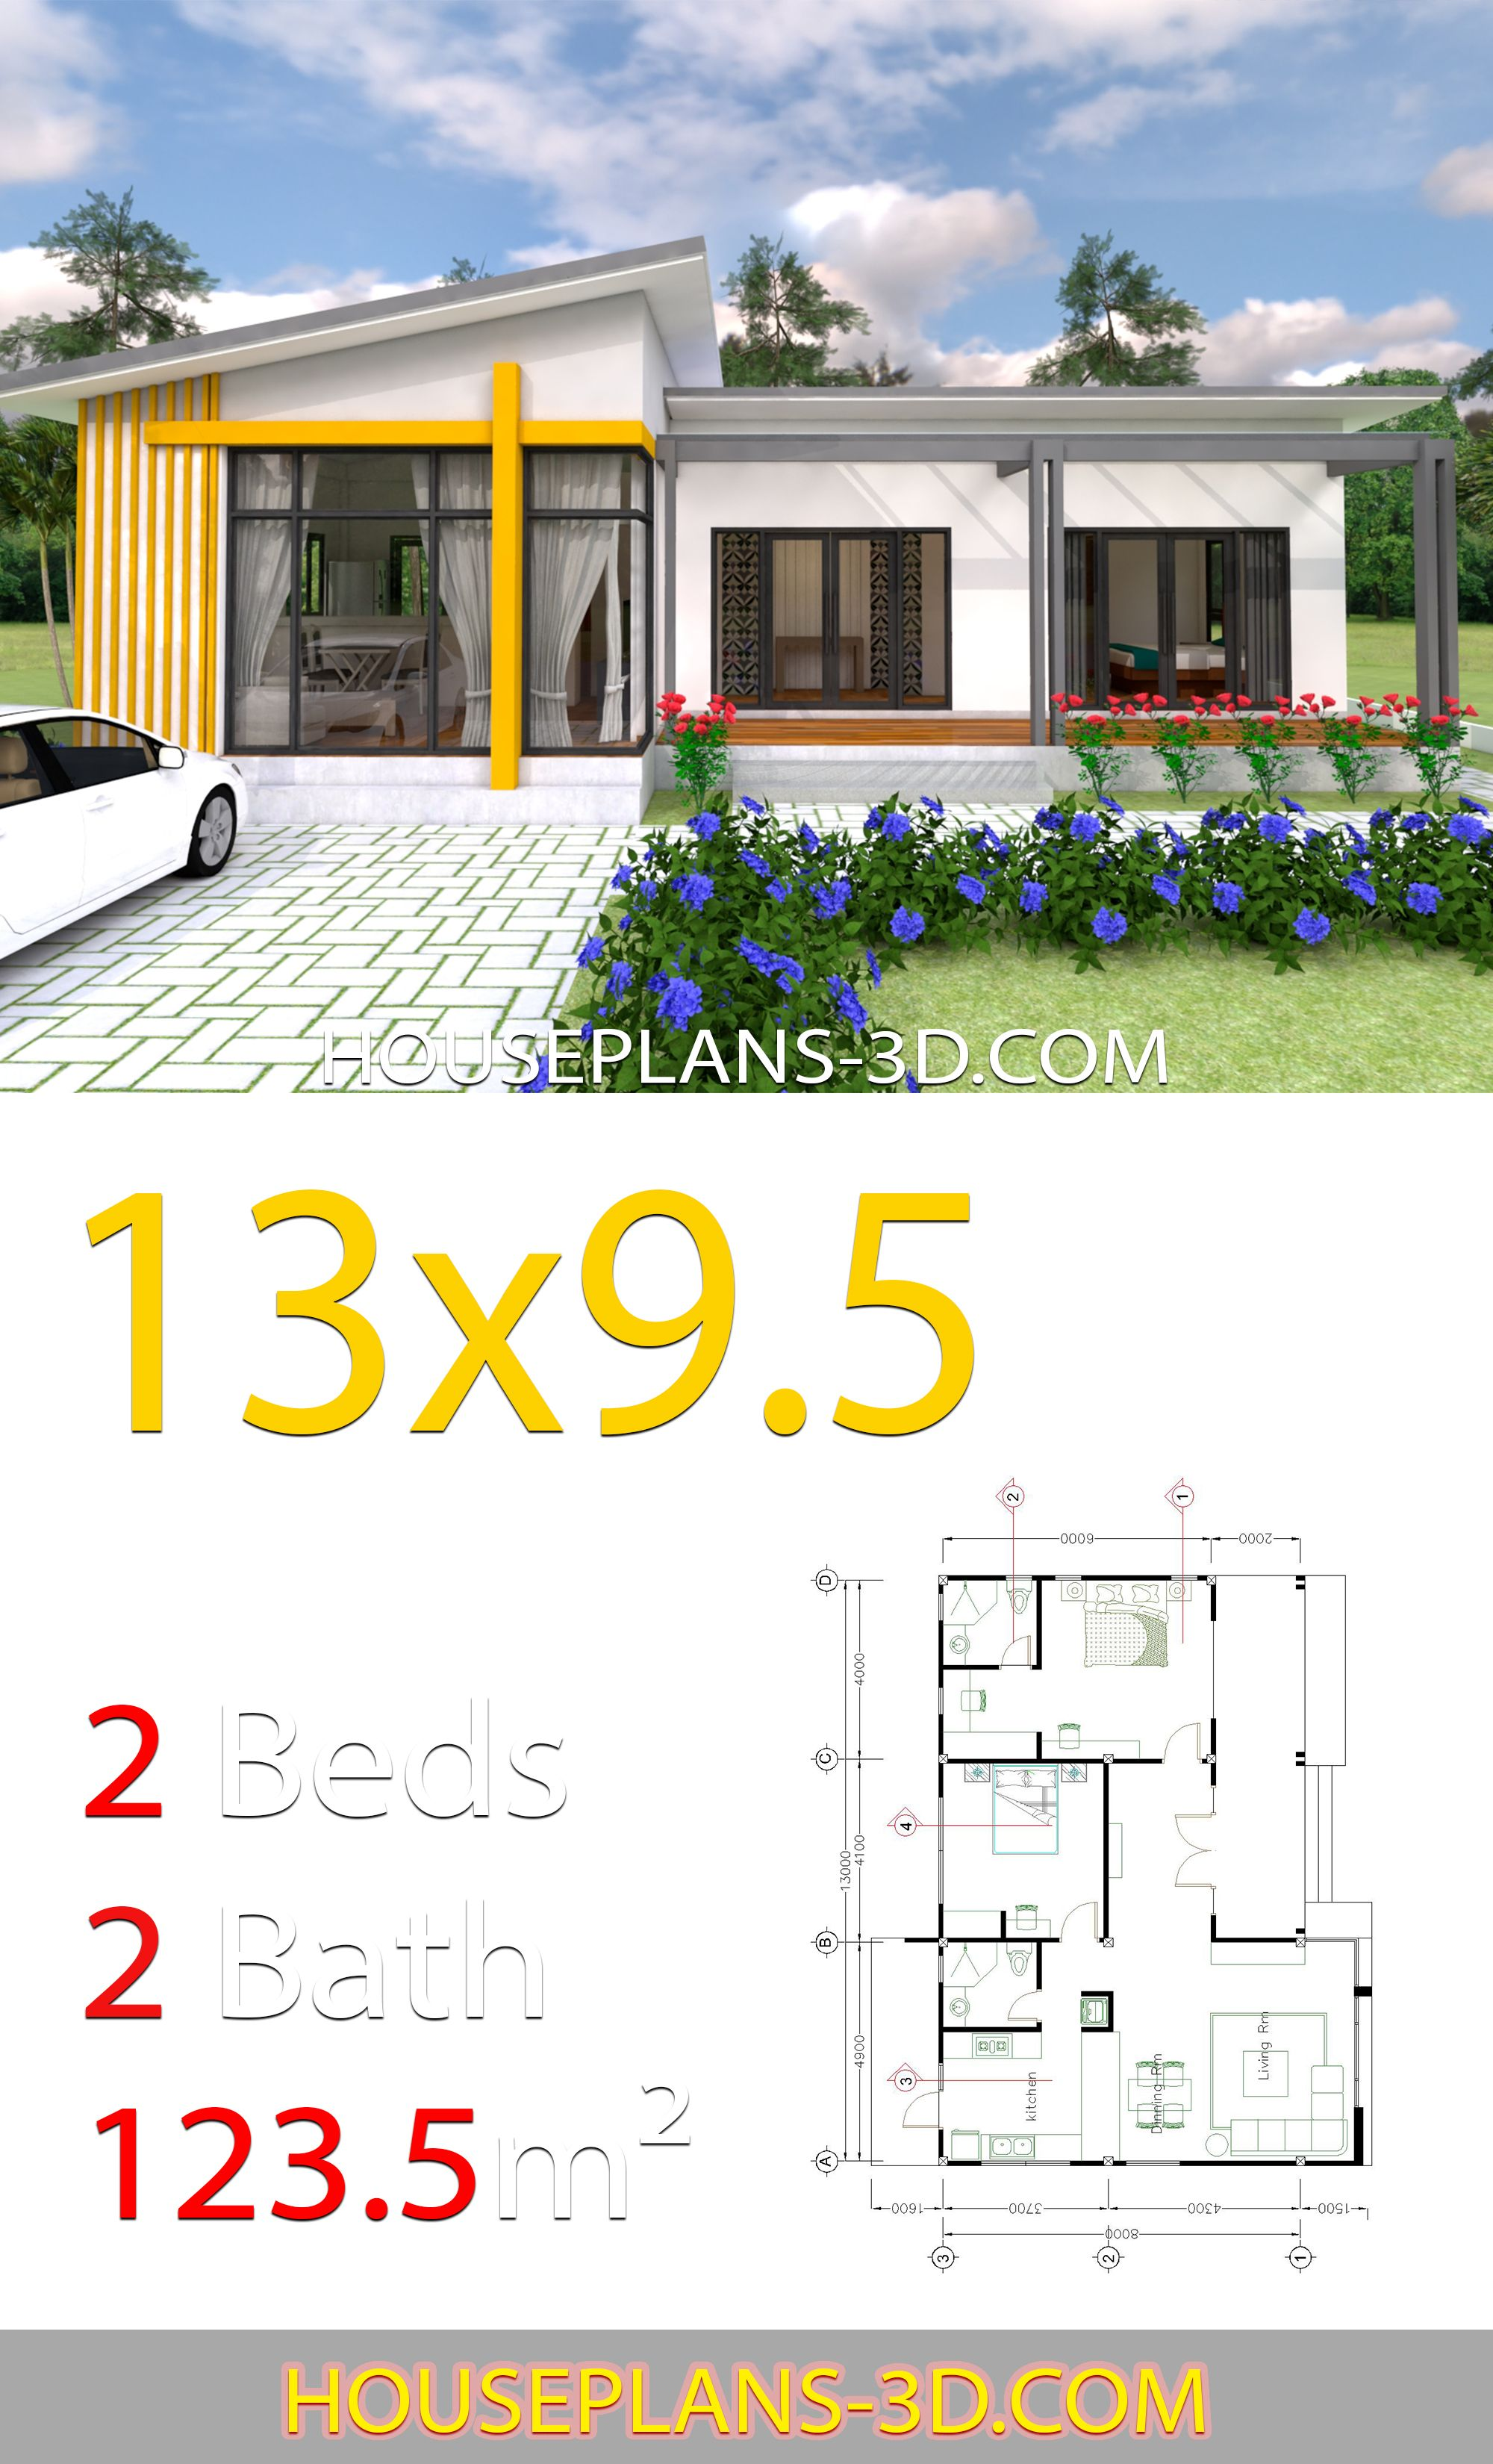 House Design 13x9 5 With 2 Bedrooms Slop Roof House Plans 3d House Plans Bungalow House Design House Design